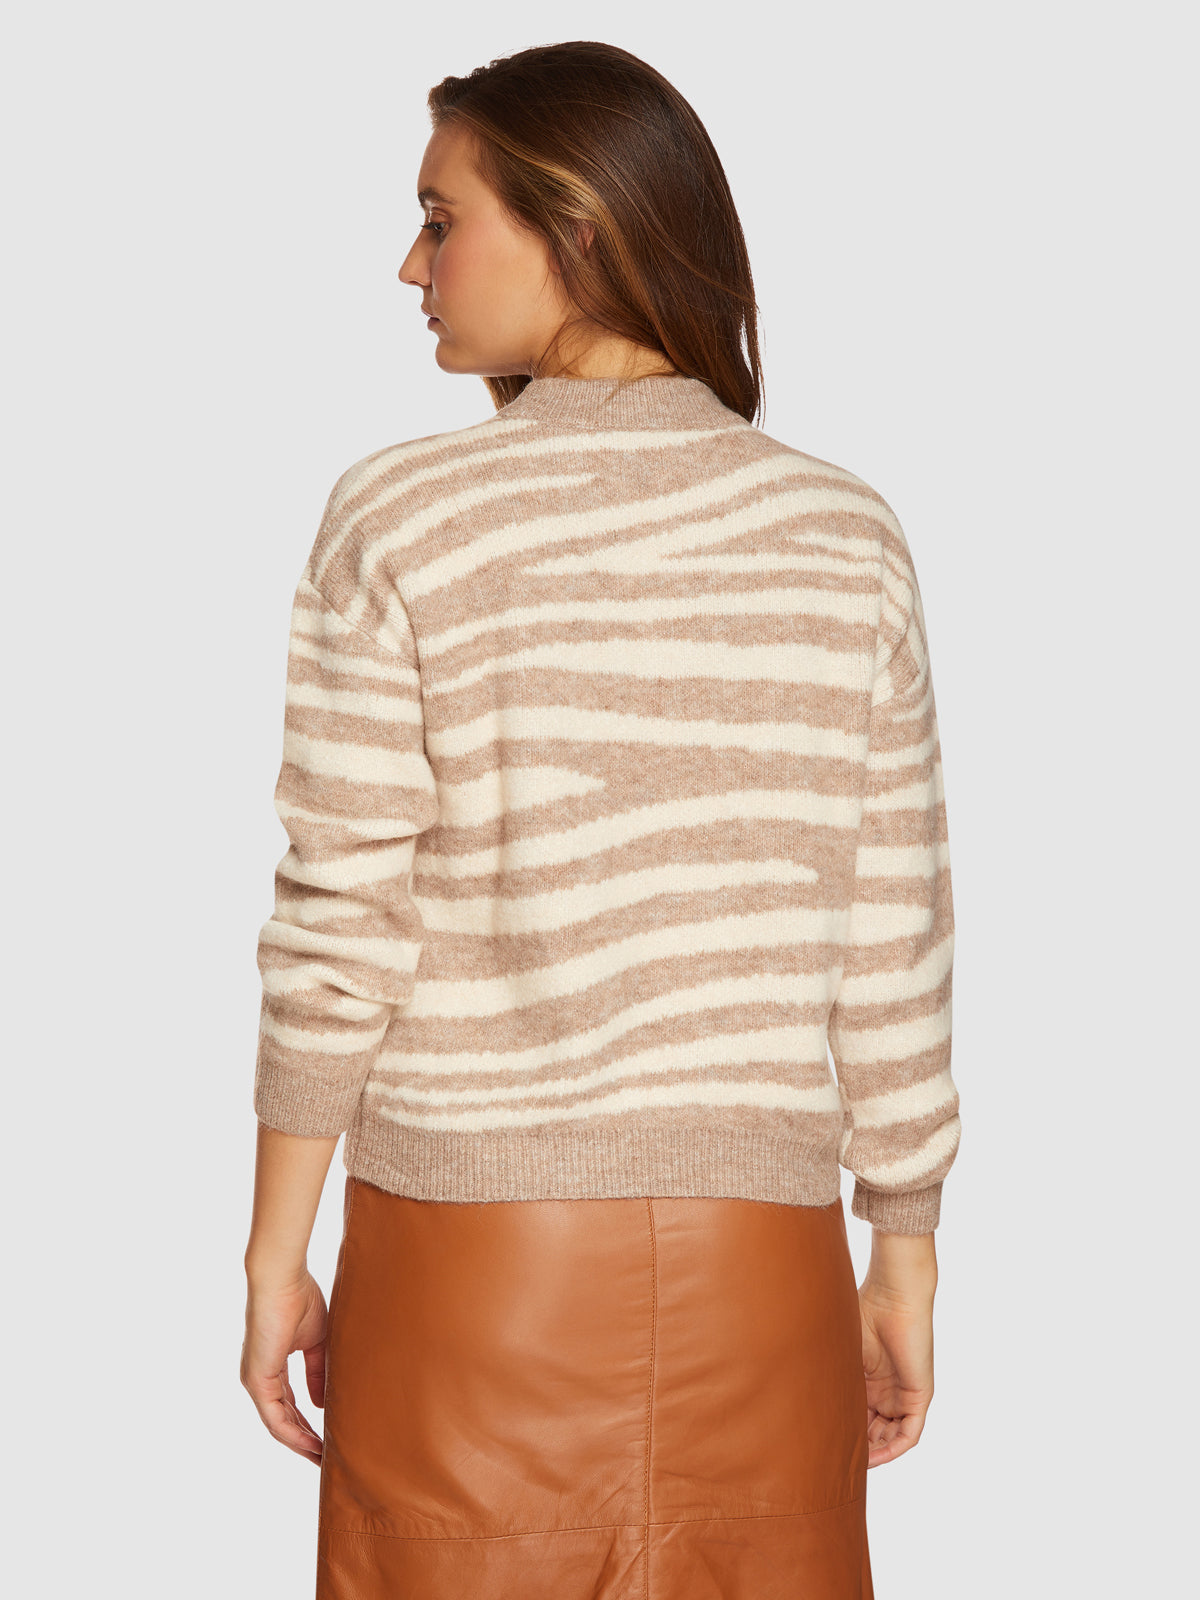 CAMILLA ZEBRA KNIT NATURAL